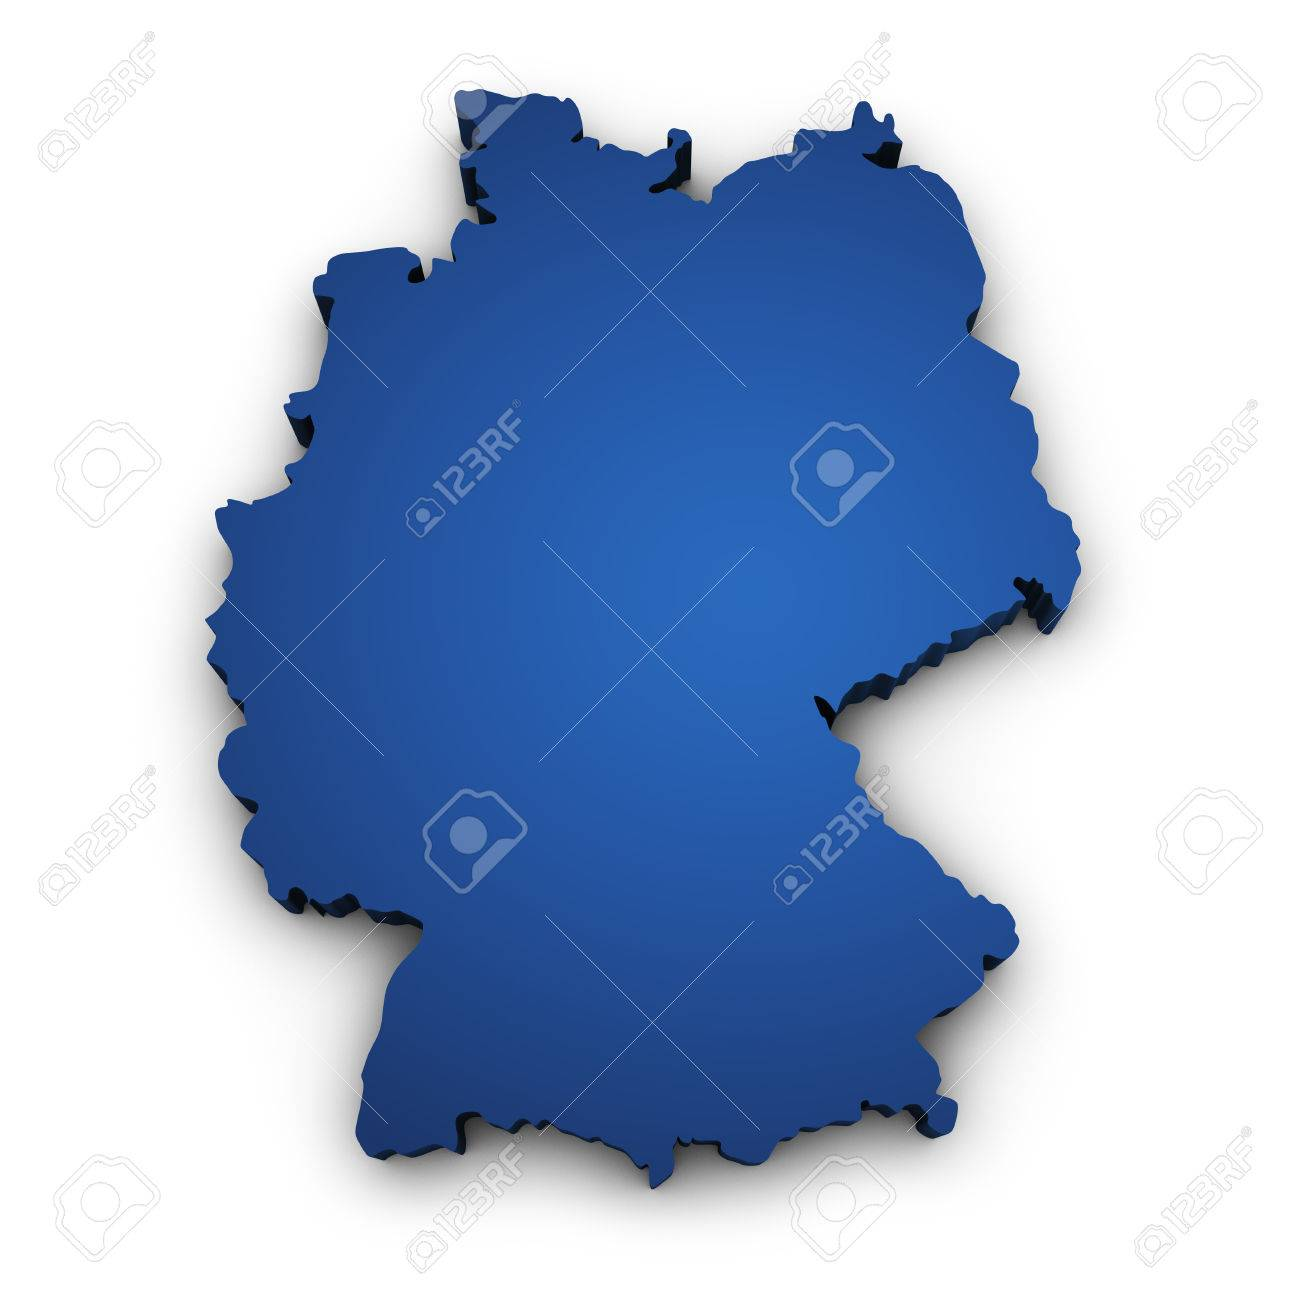 Shape D Of Germany Map Colored In Blue And Isolated On White - Germany map shape